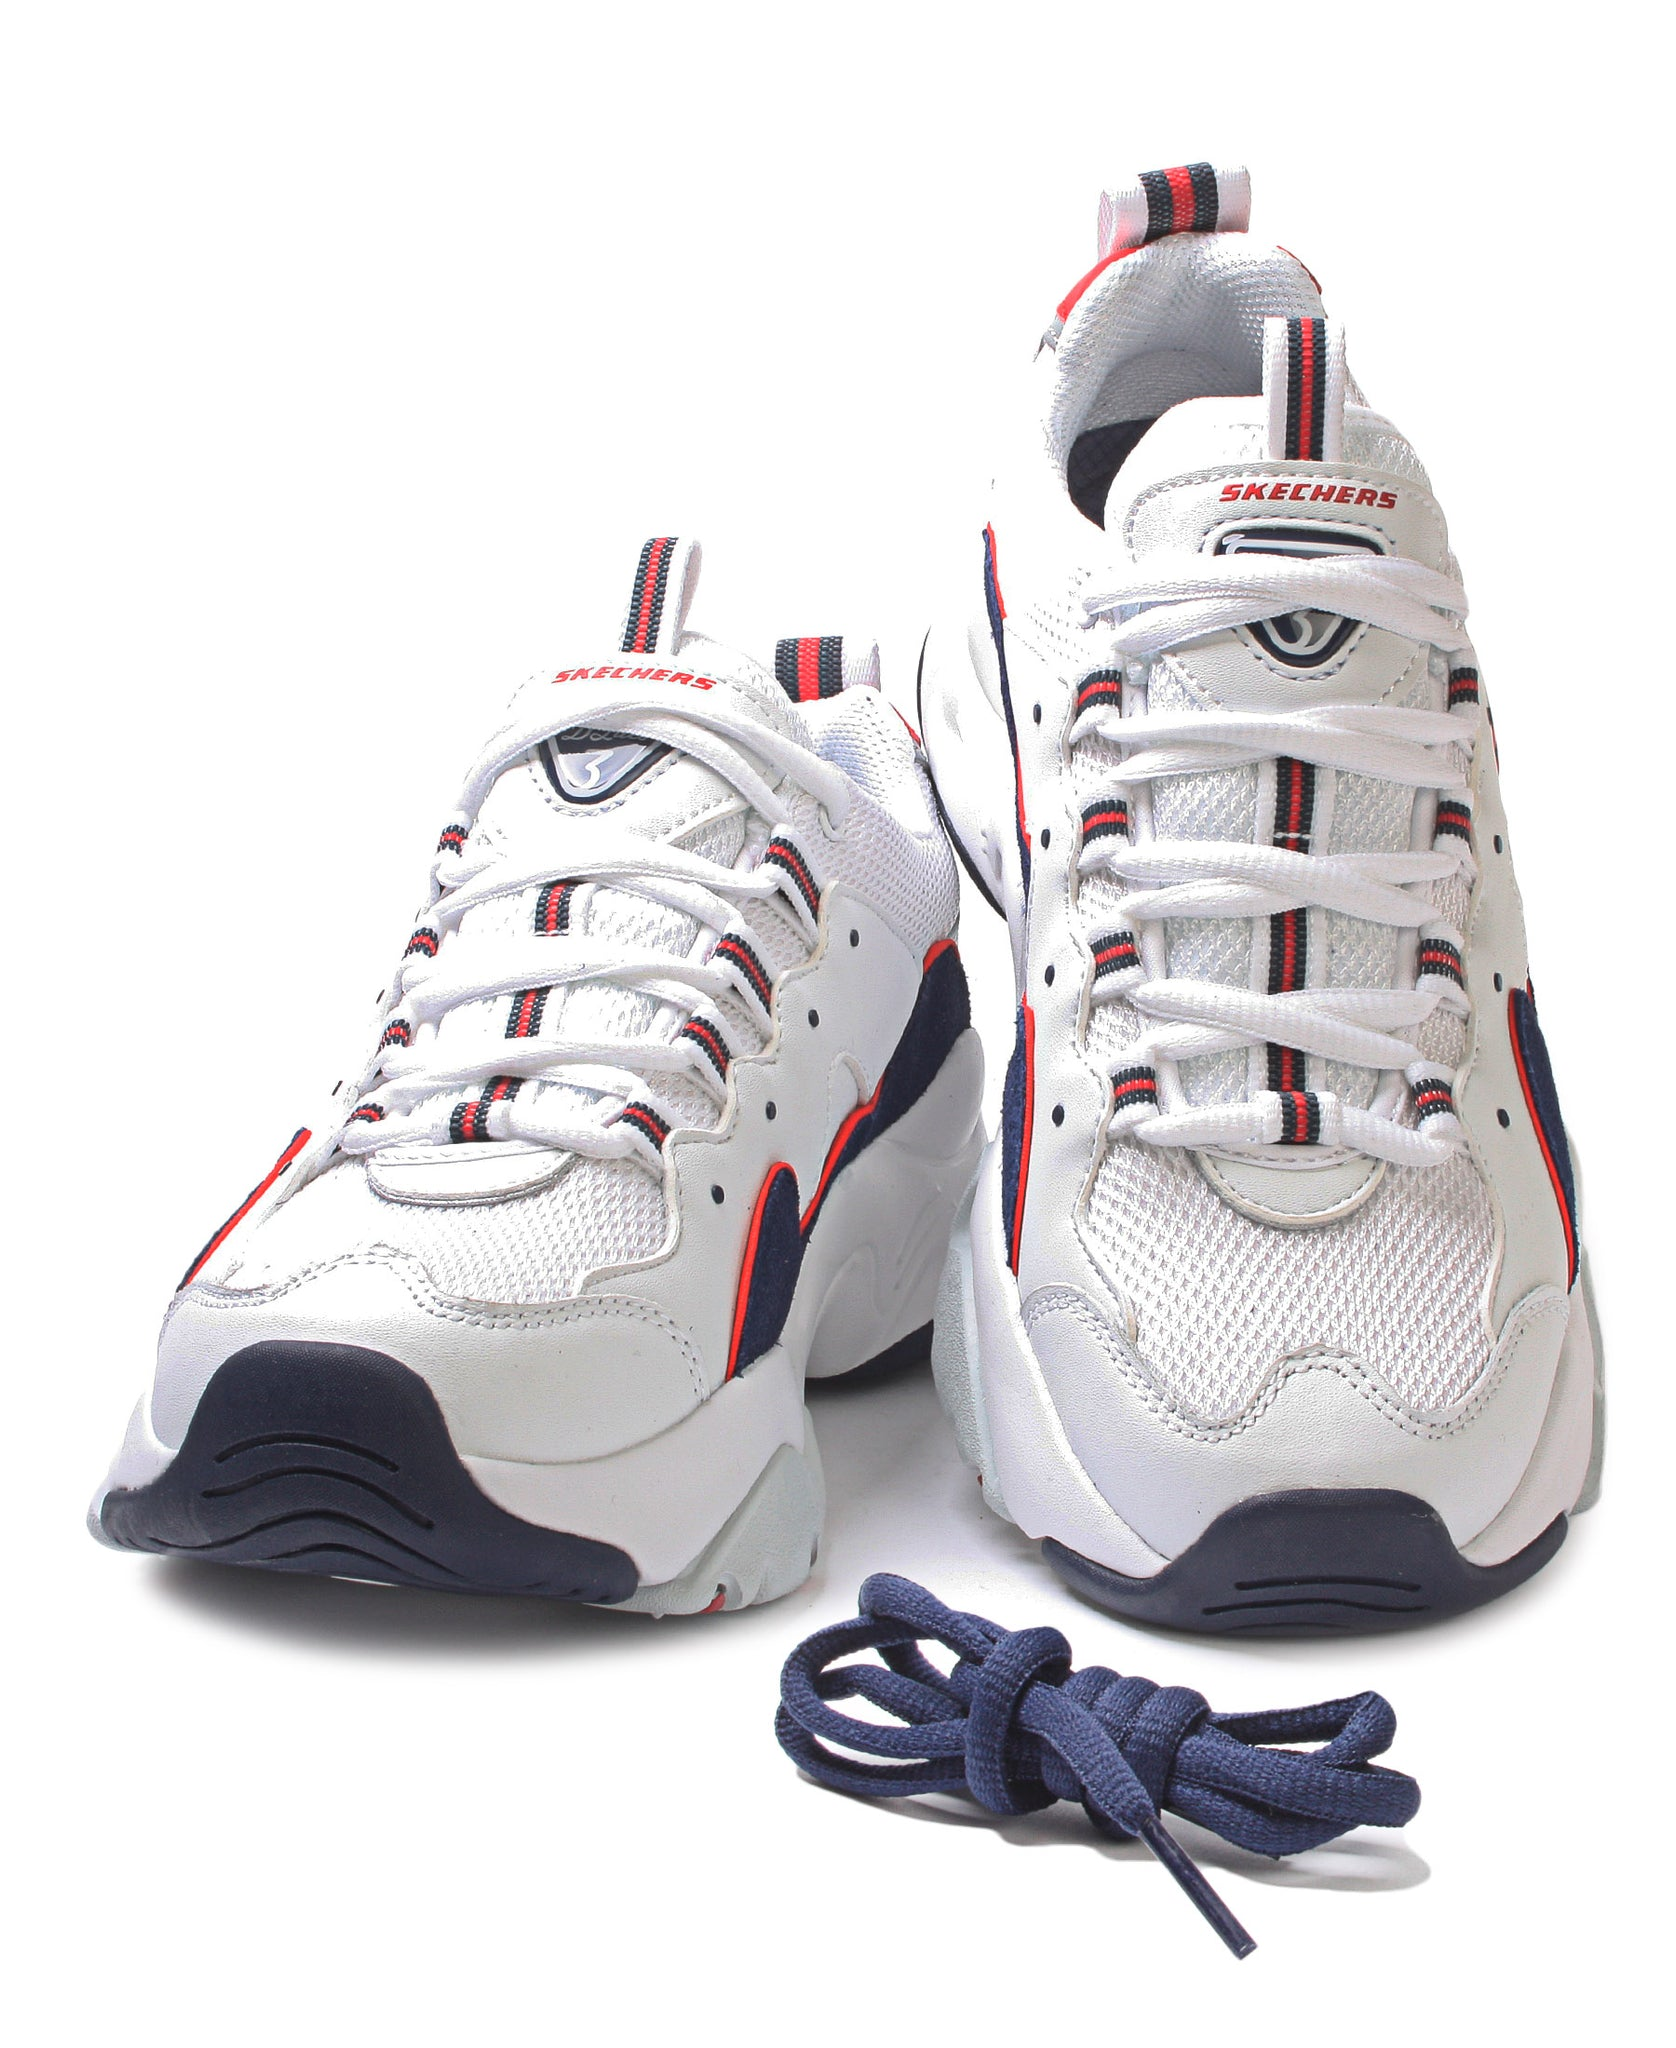 D Lites 3.0 Sneakers - White-Navy